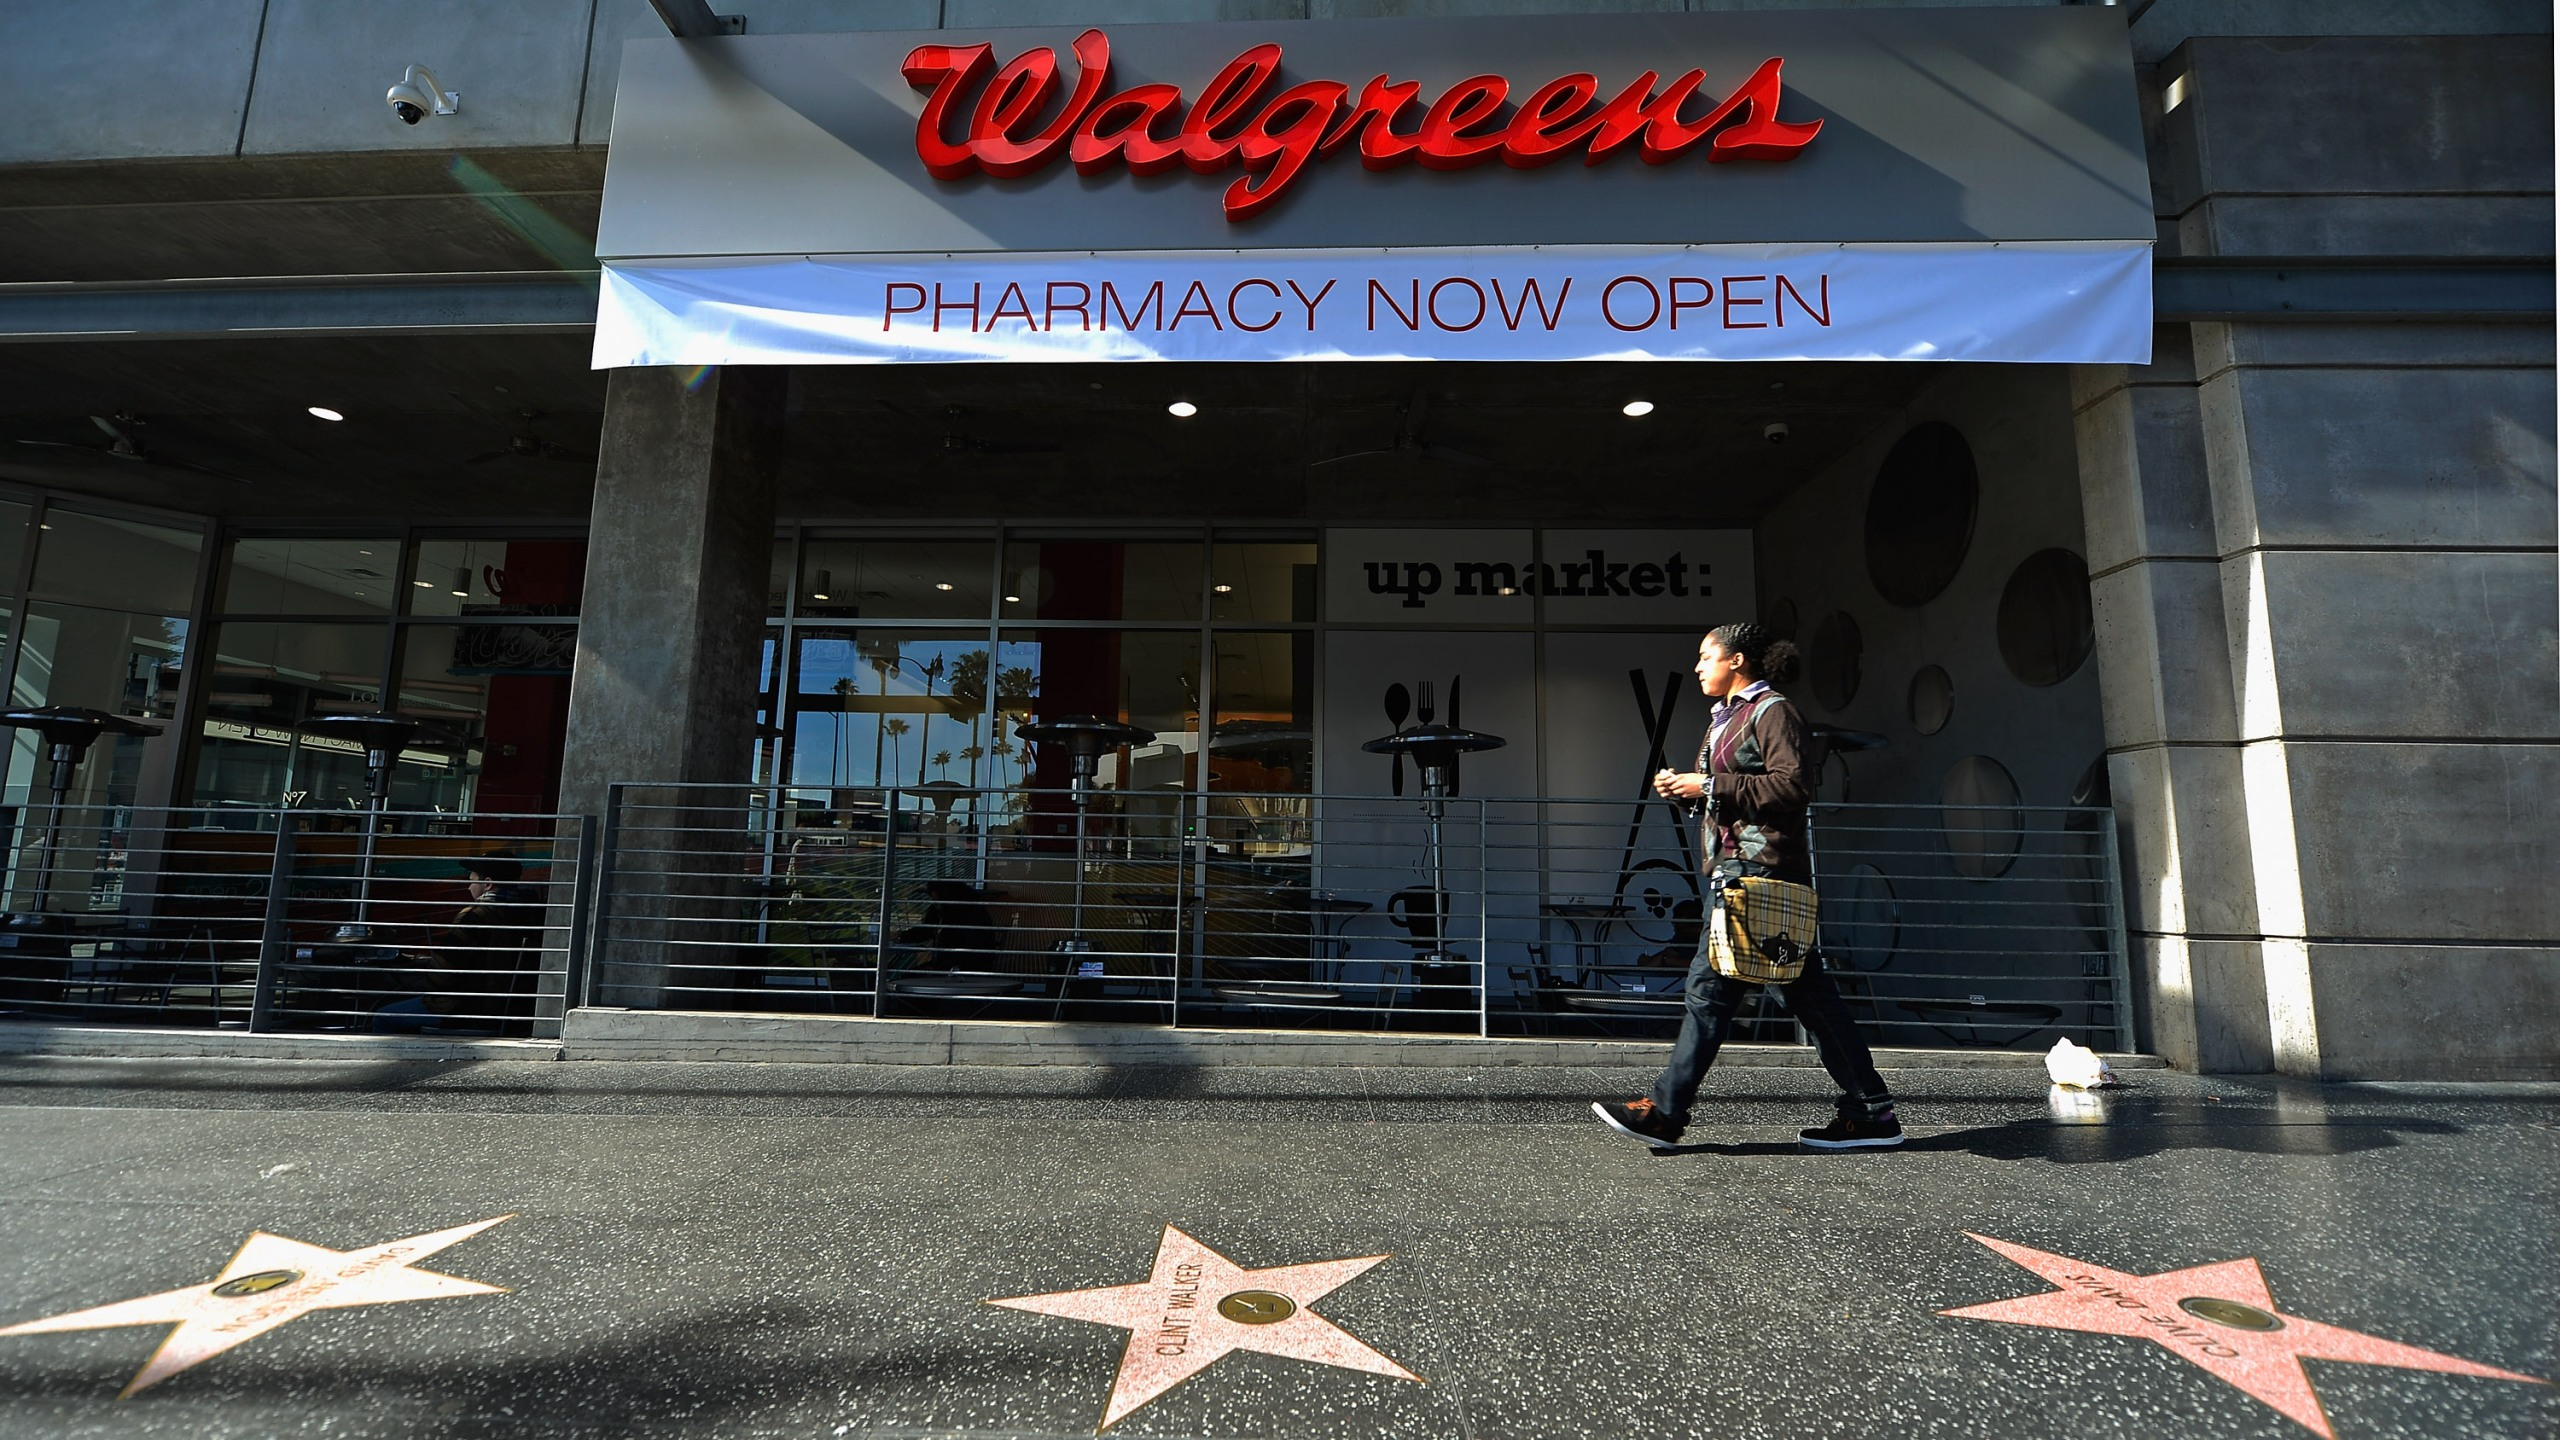 A woman walks past a Walgreens at the corner of Sunset and Vine in Hollywood on Jan. 15, 2013. (Credit: Kevork Djansezian / Getty Images)